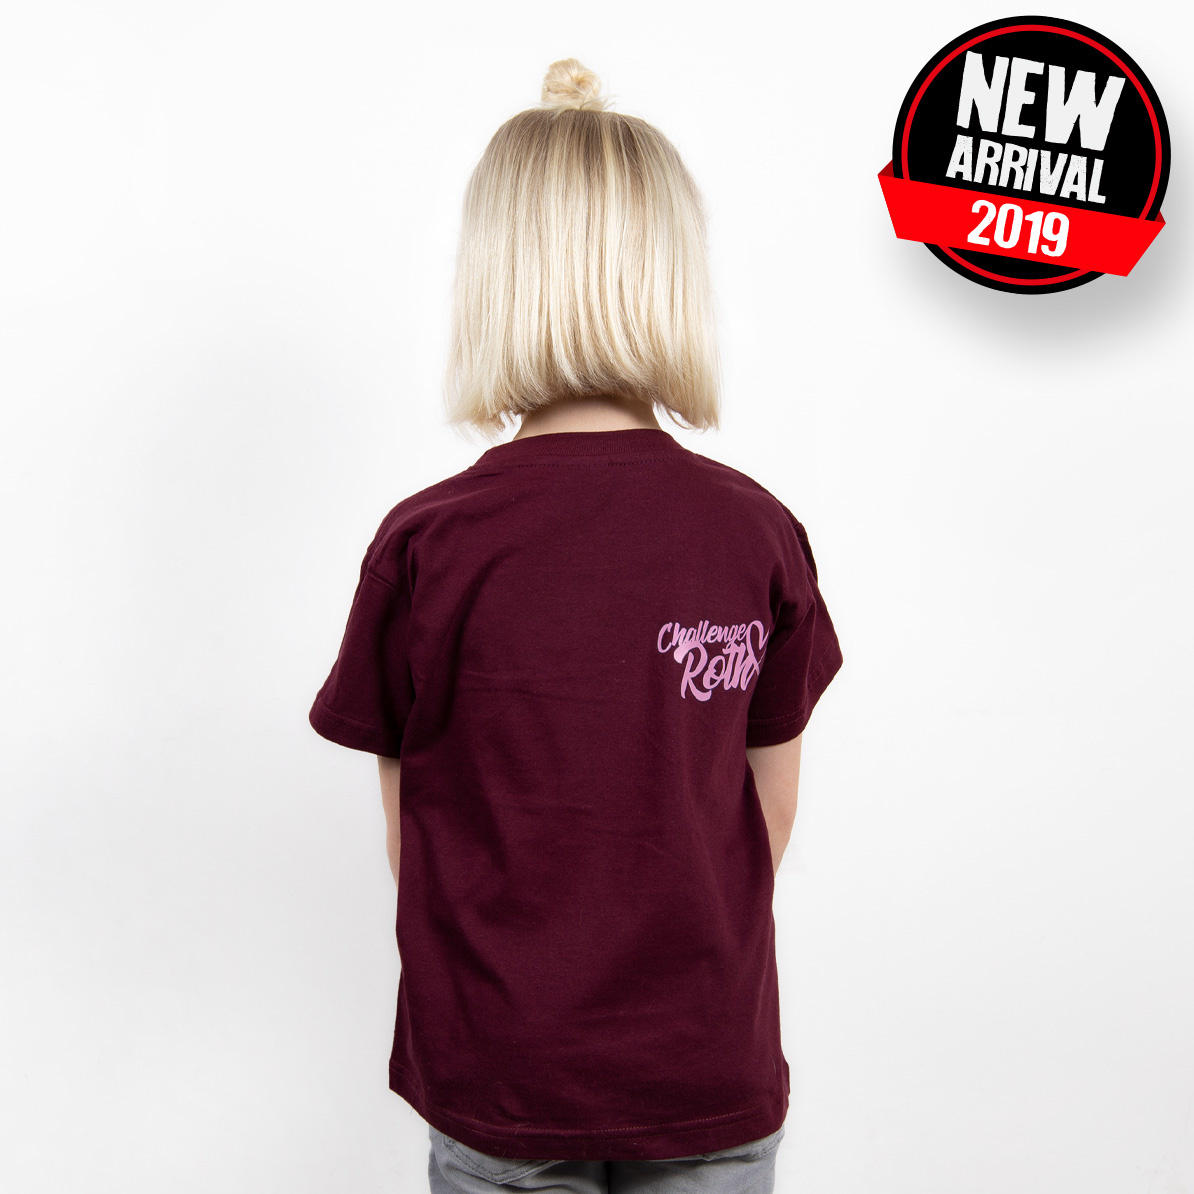 Challenge Kids-Shirt Einhorn - Bordeaux-2